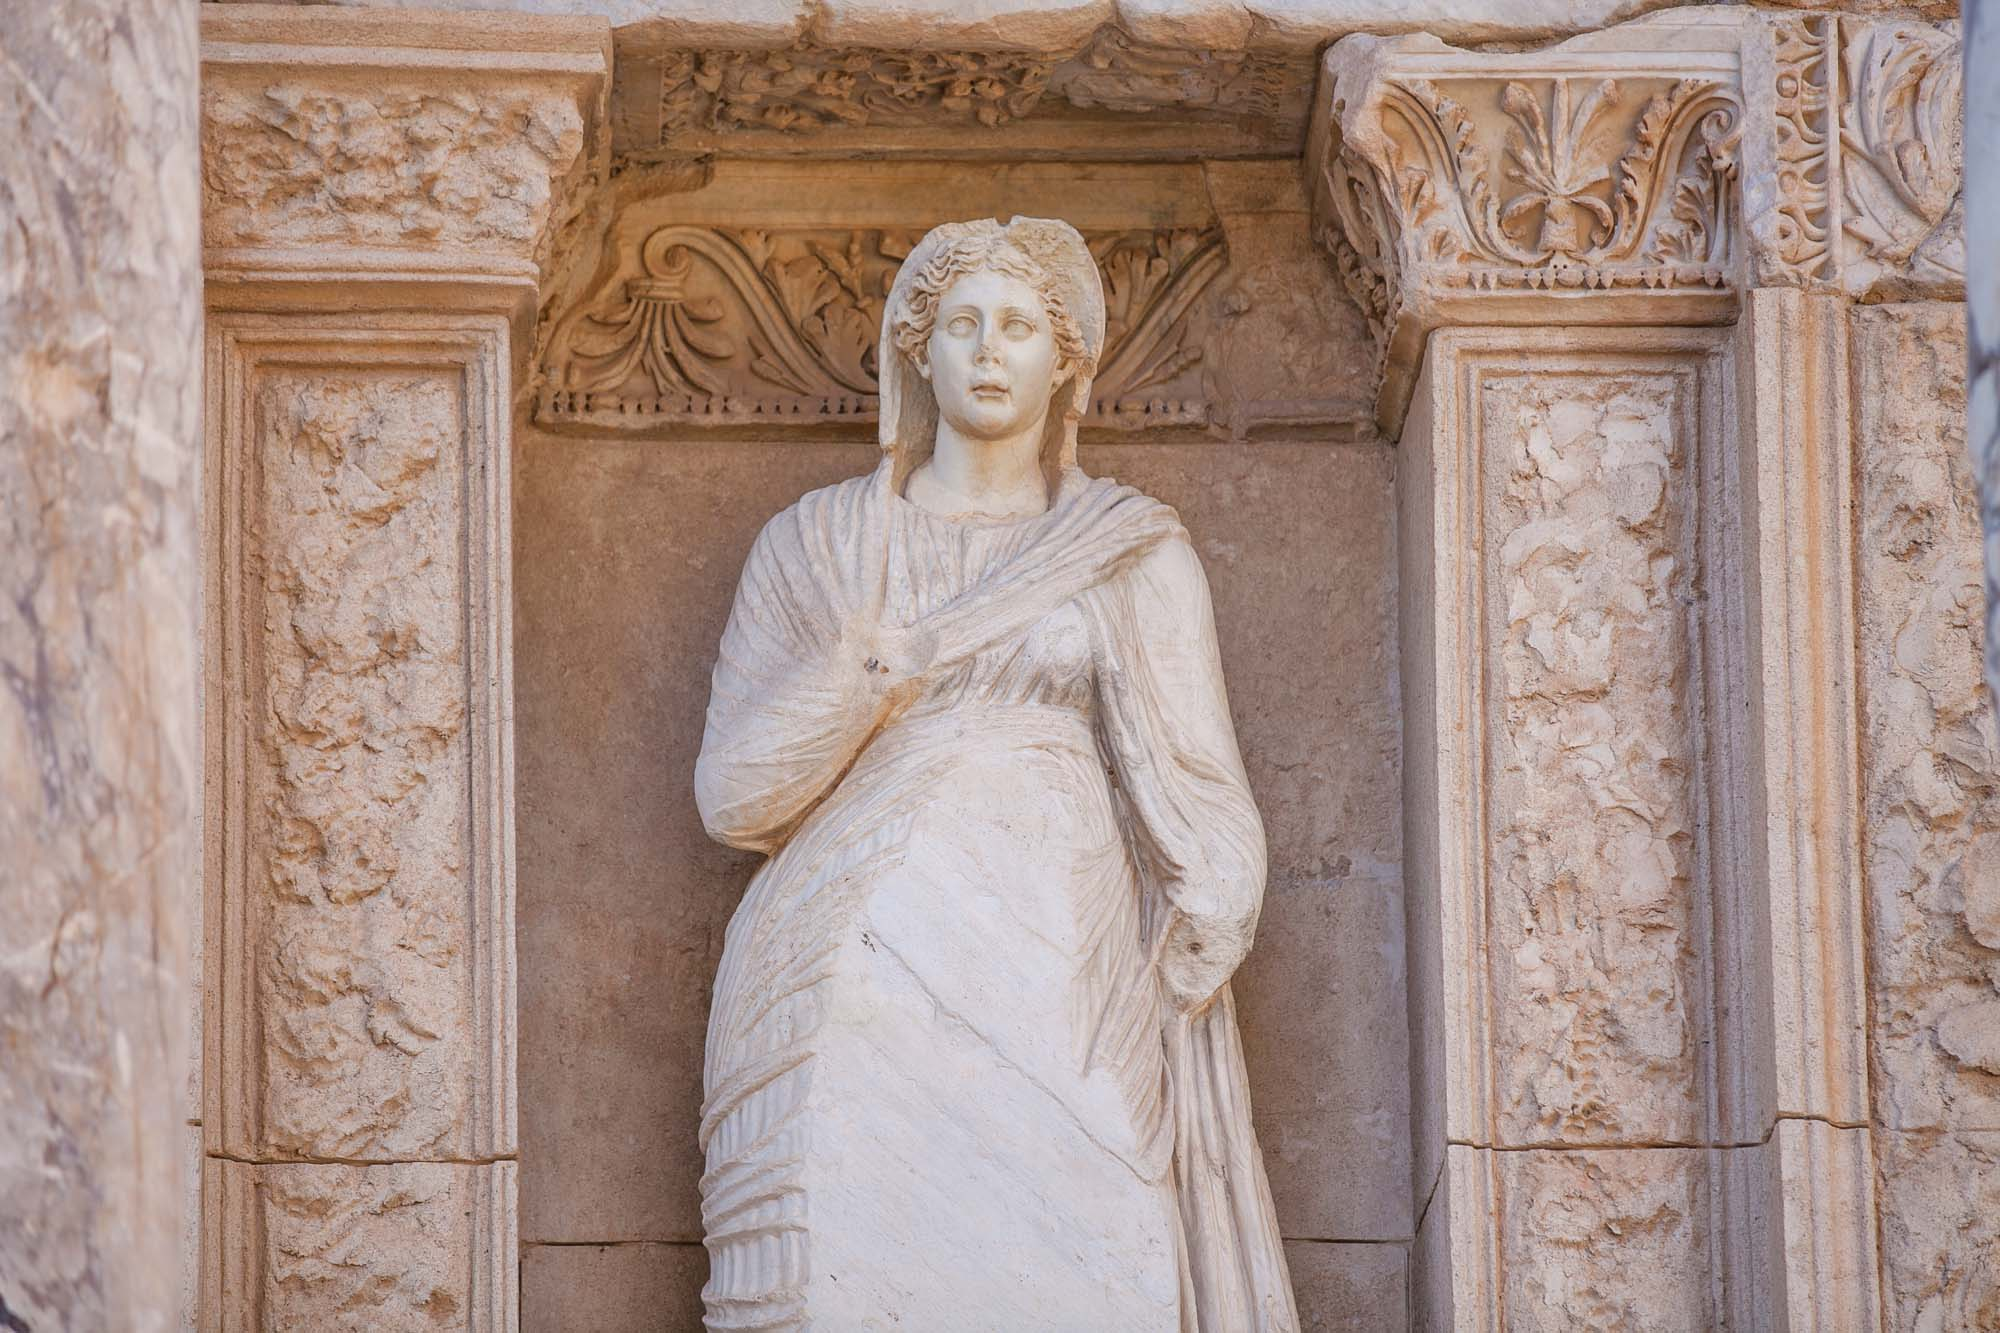 Library of Celsus statue redone